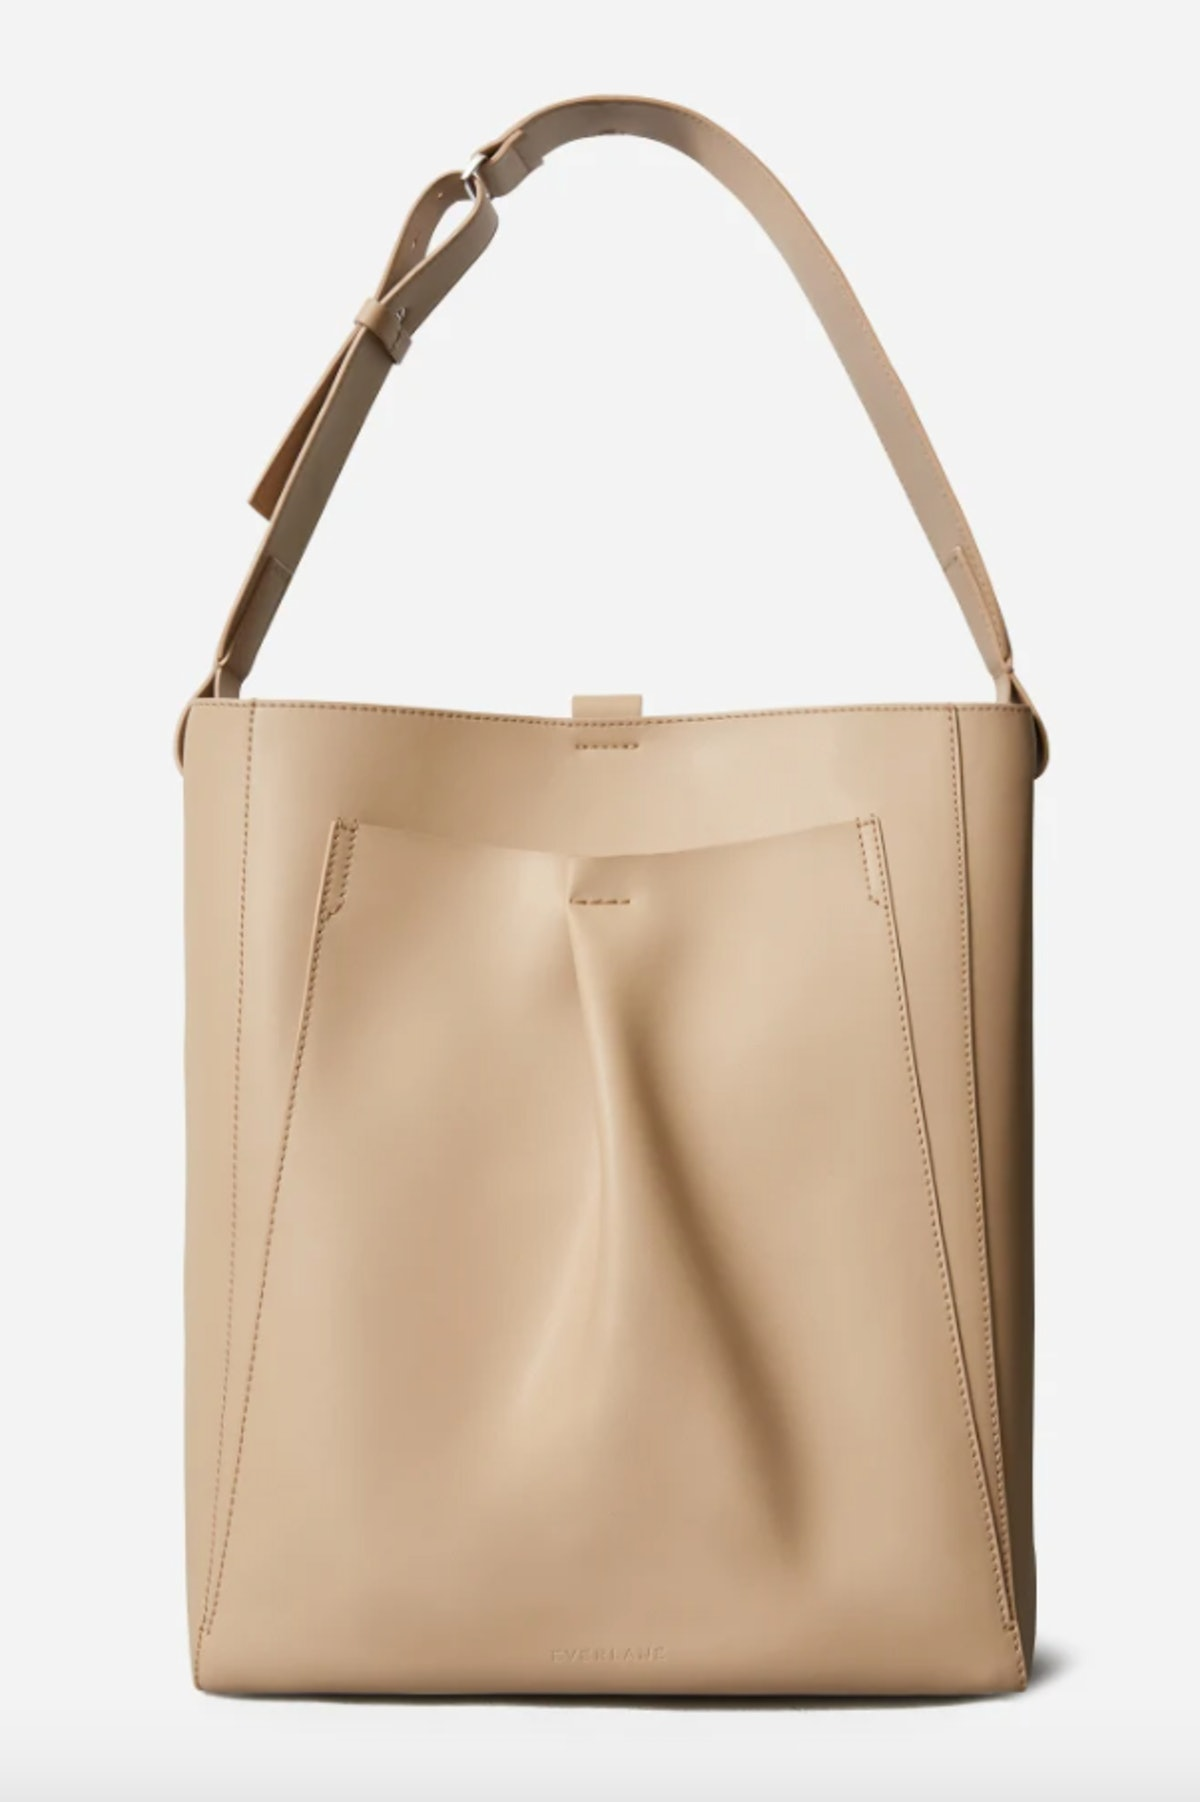 Everlane's Italian Leather Studio Bag In Light Taupe that can fit a laptop.